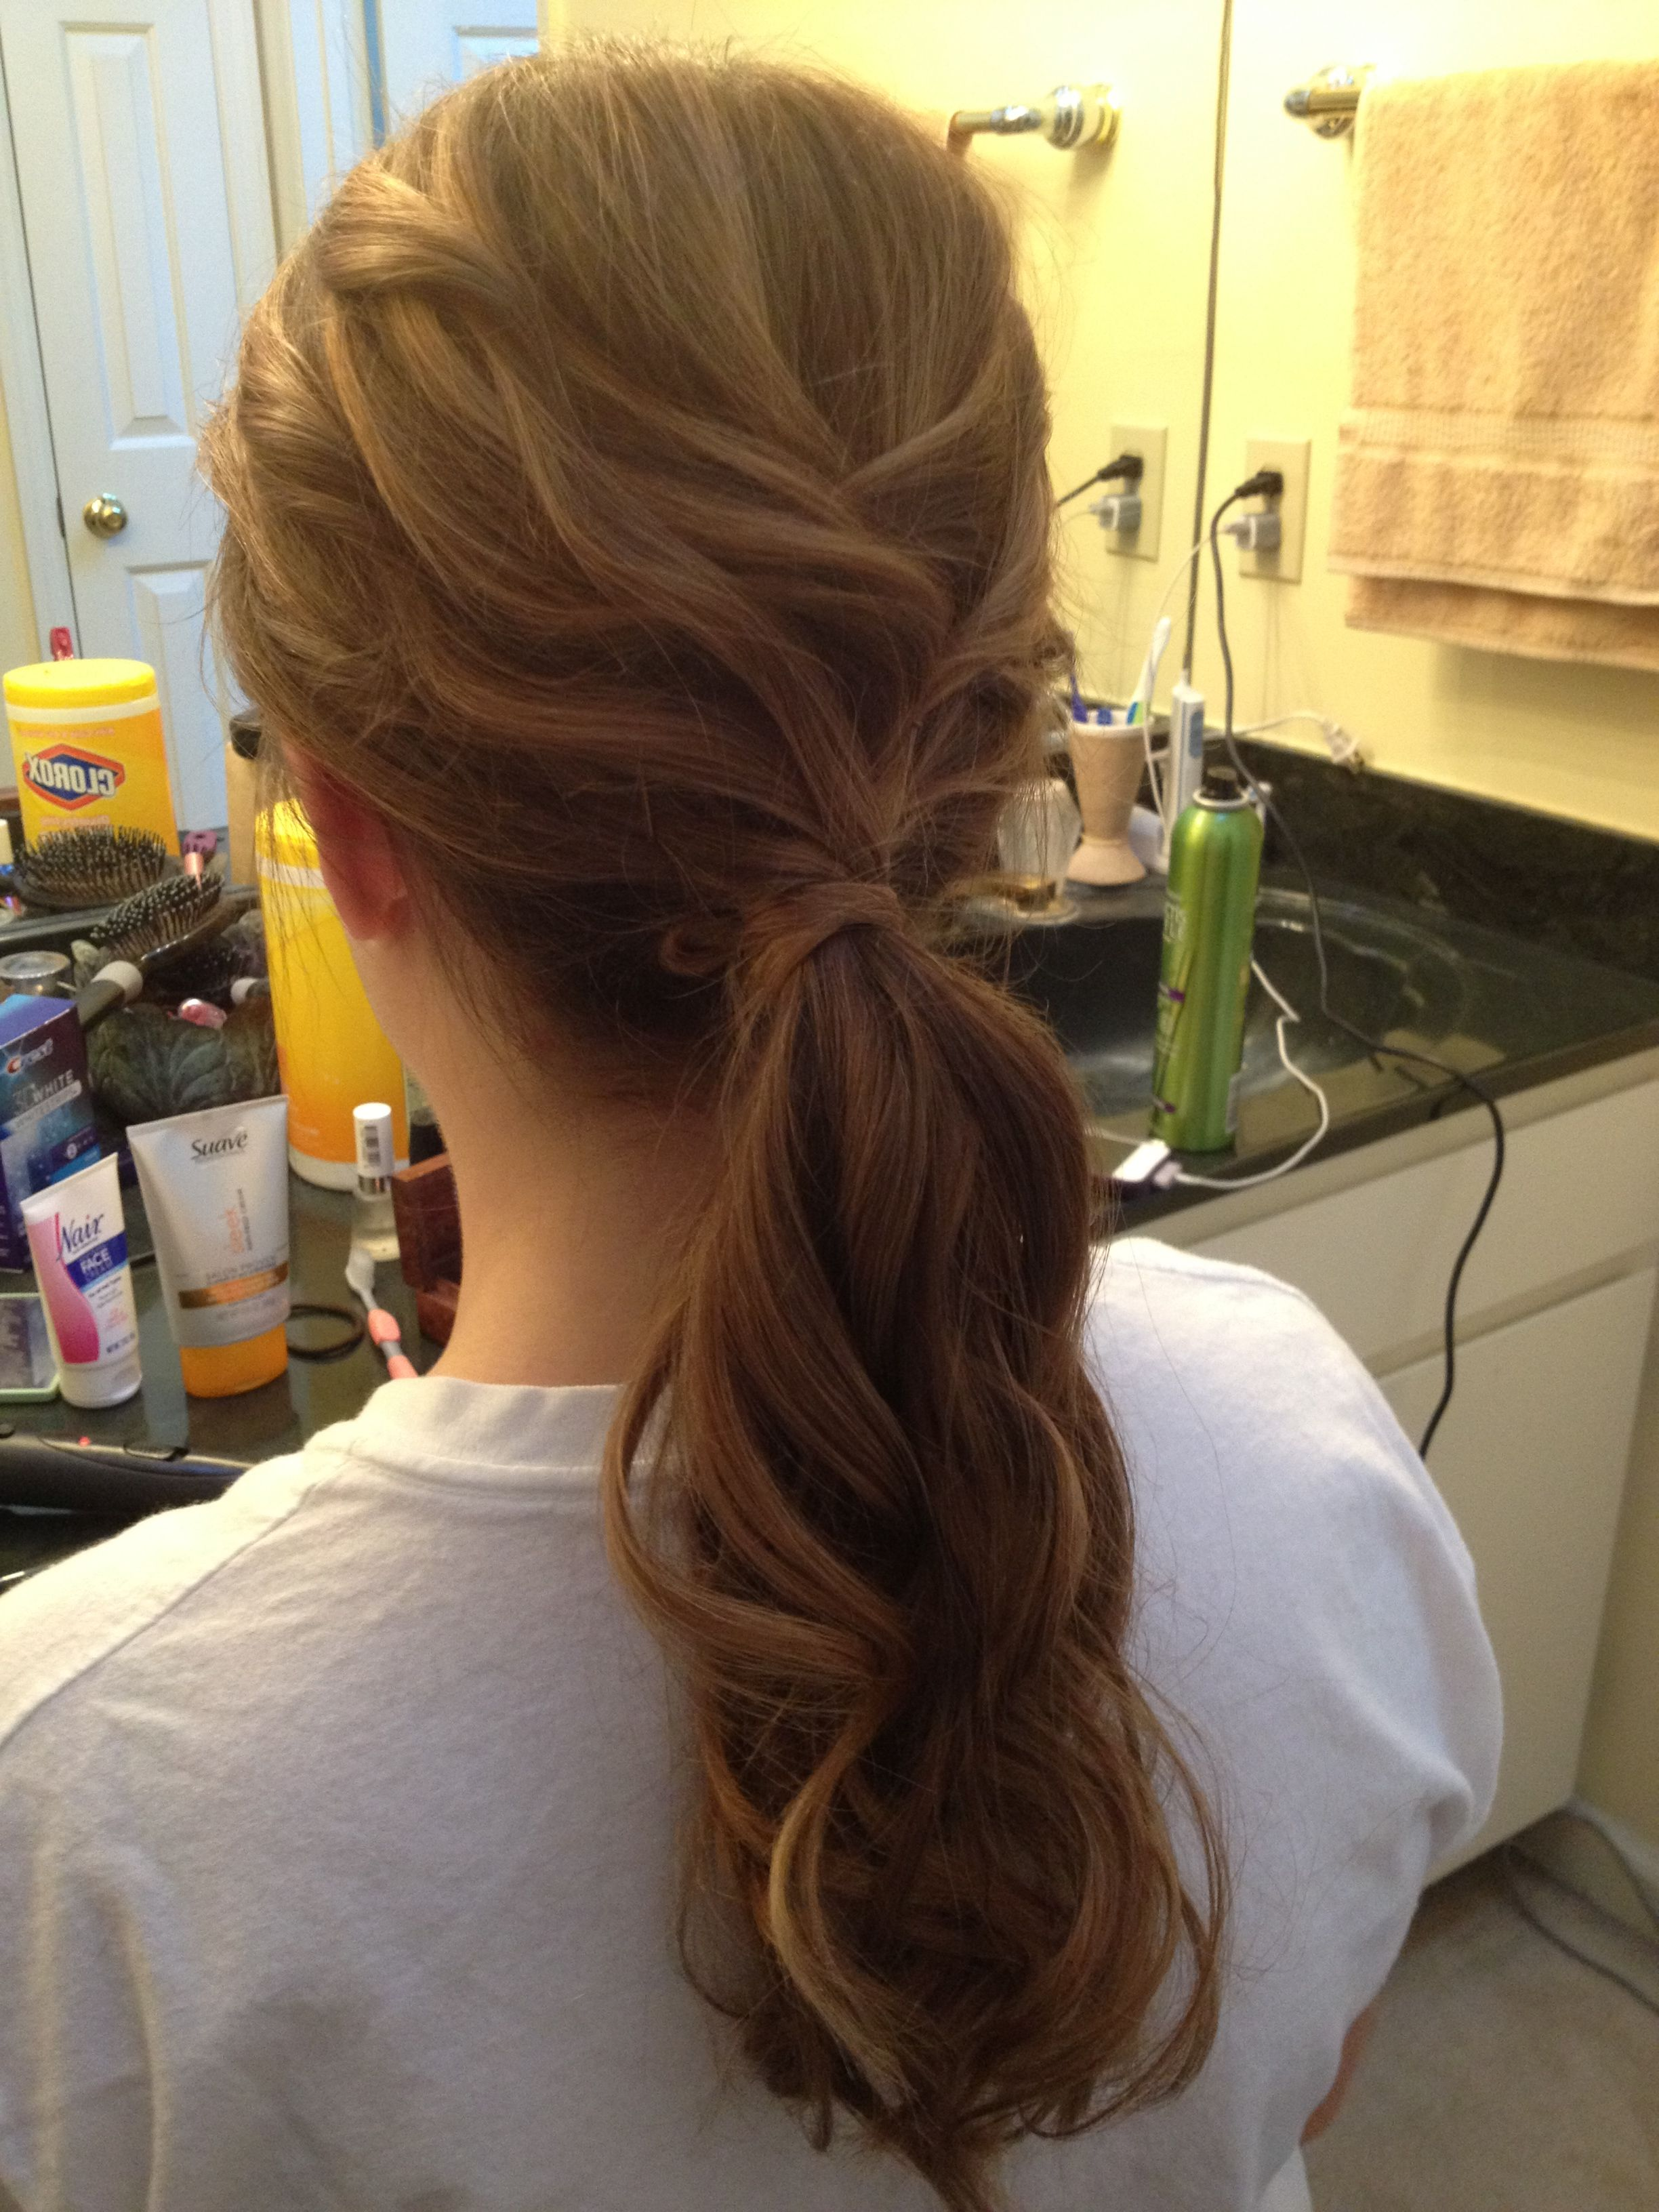 Curly low ponytail formal hairstyle formal hairstyles pinterest